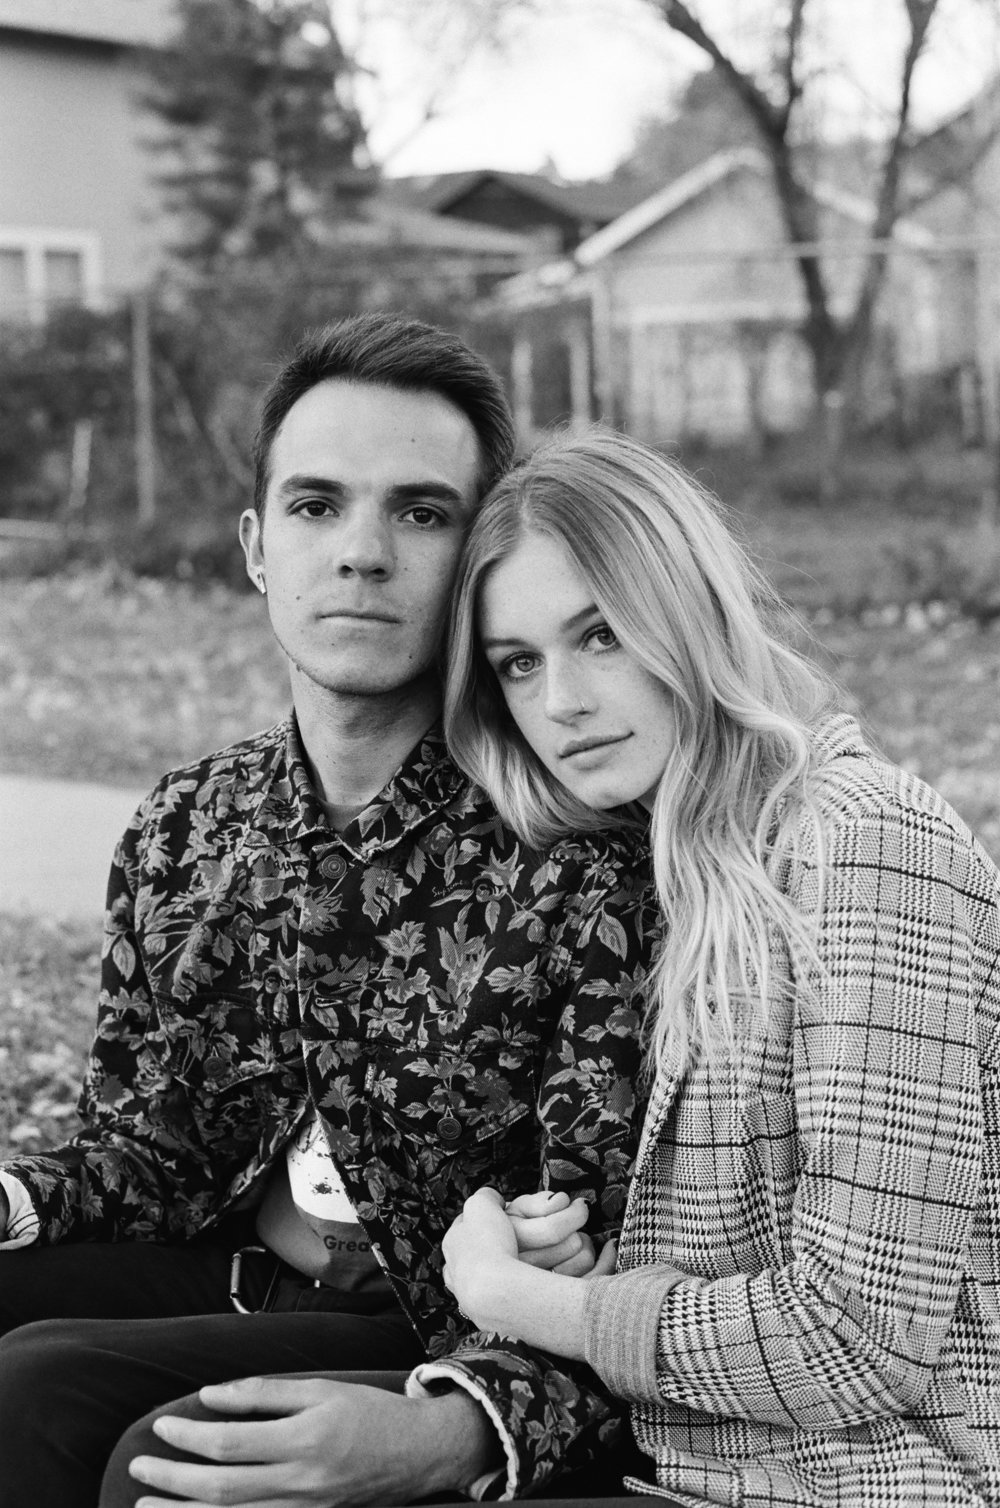 Attached to The Exhilaration of Youth  is a series of photographs   that incorporates portraits and candids of young couples and individuals all shot in Flagstaff, Arizona.